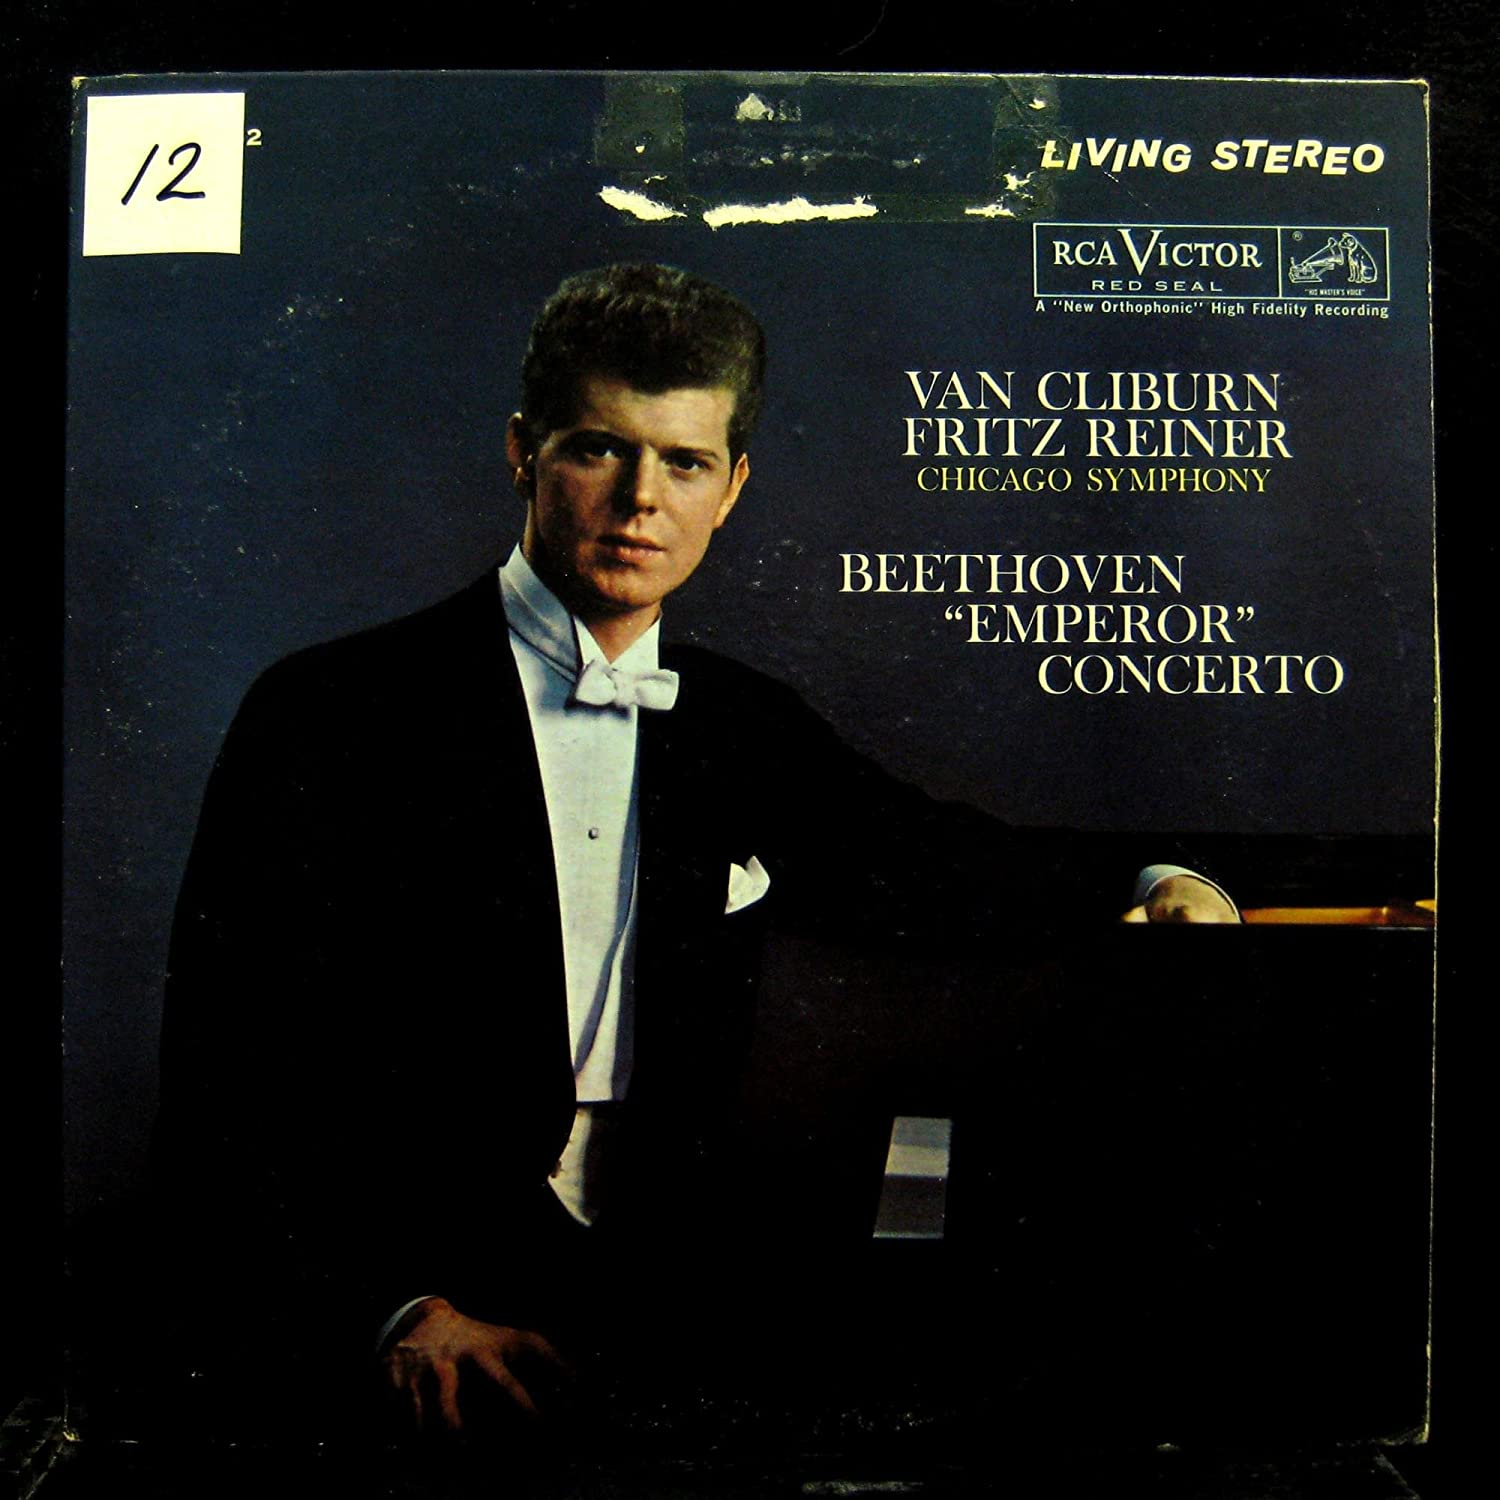 VAN CLIBURN beethoven piano concerto 5 emperor LP Used_VeryGood LSC-2562 Living Stereo SD